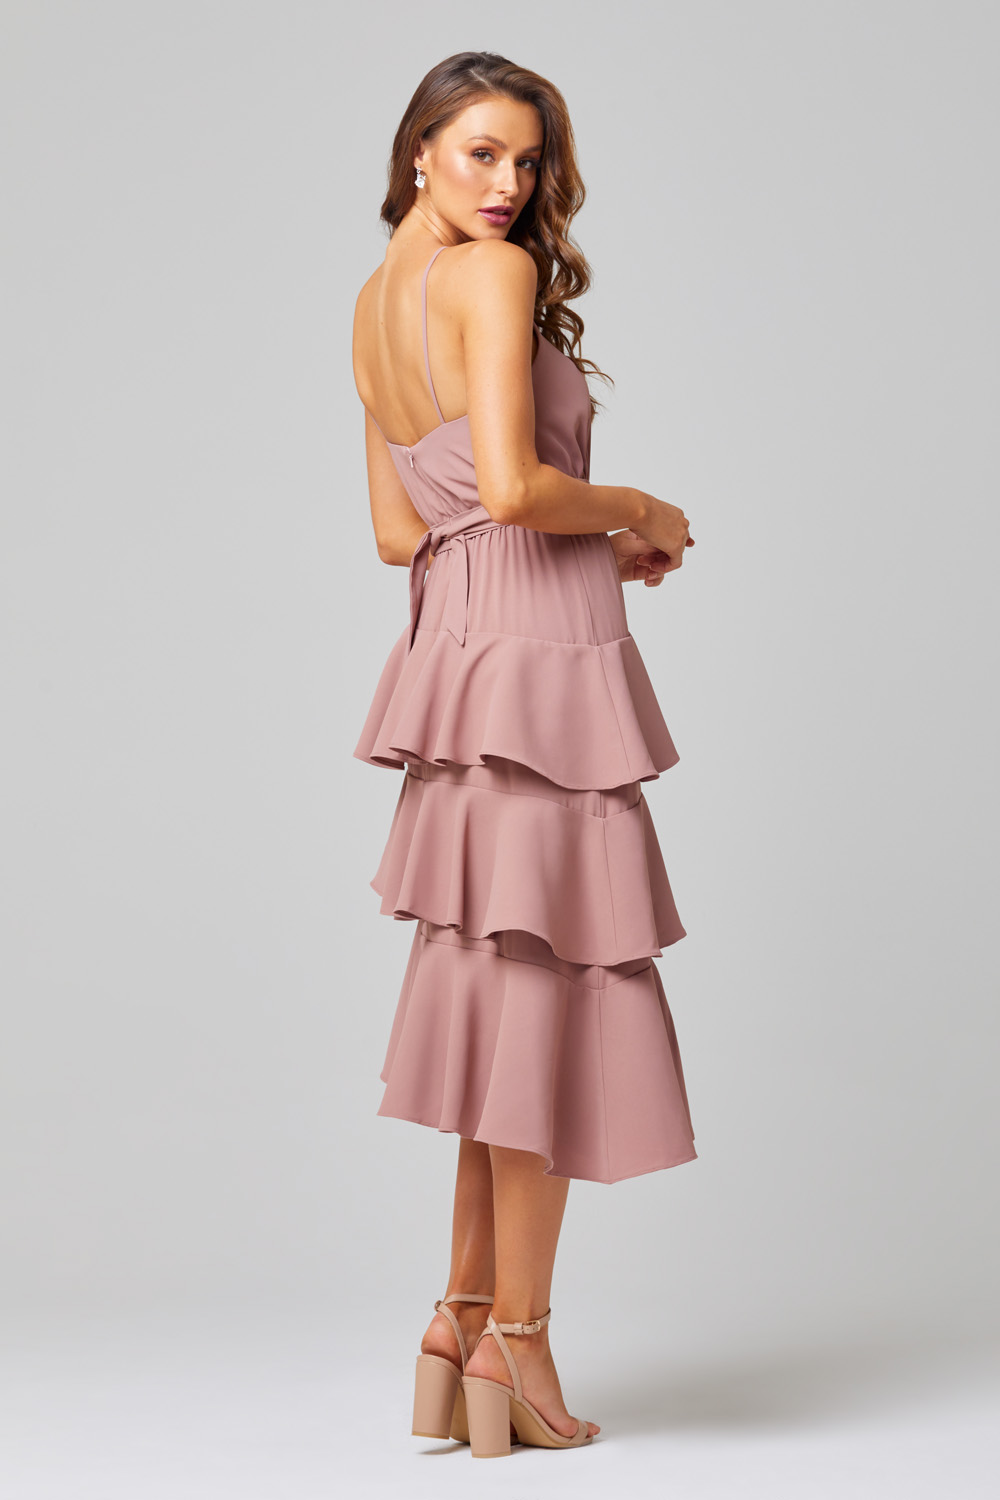 Ariel Tiered Ruffle Bridesmaid Dress - TO851 back